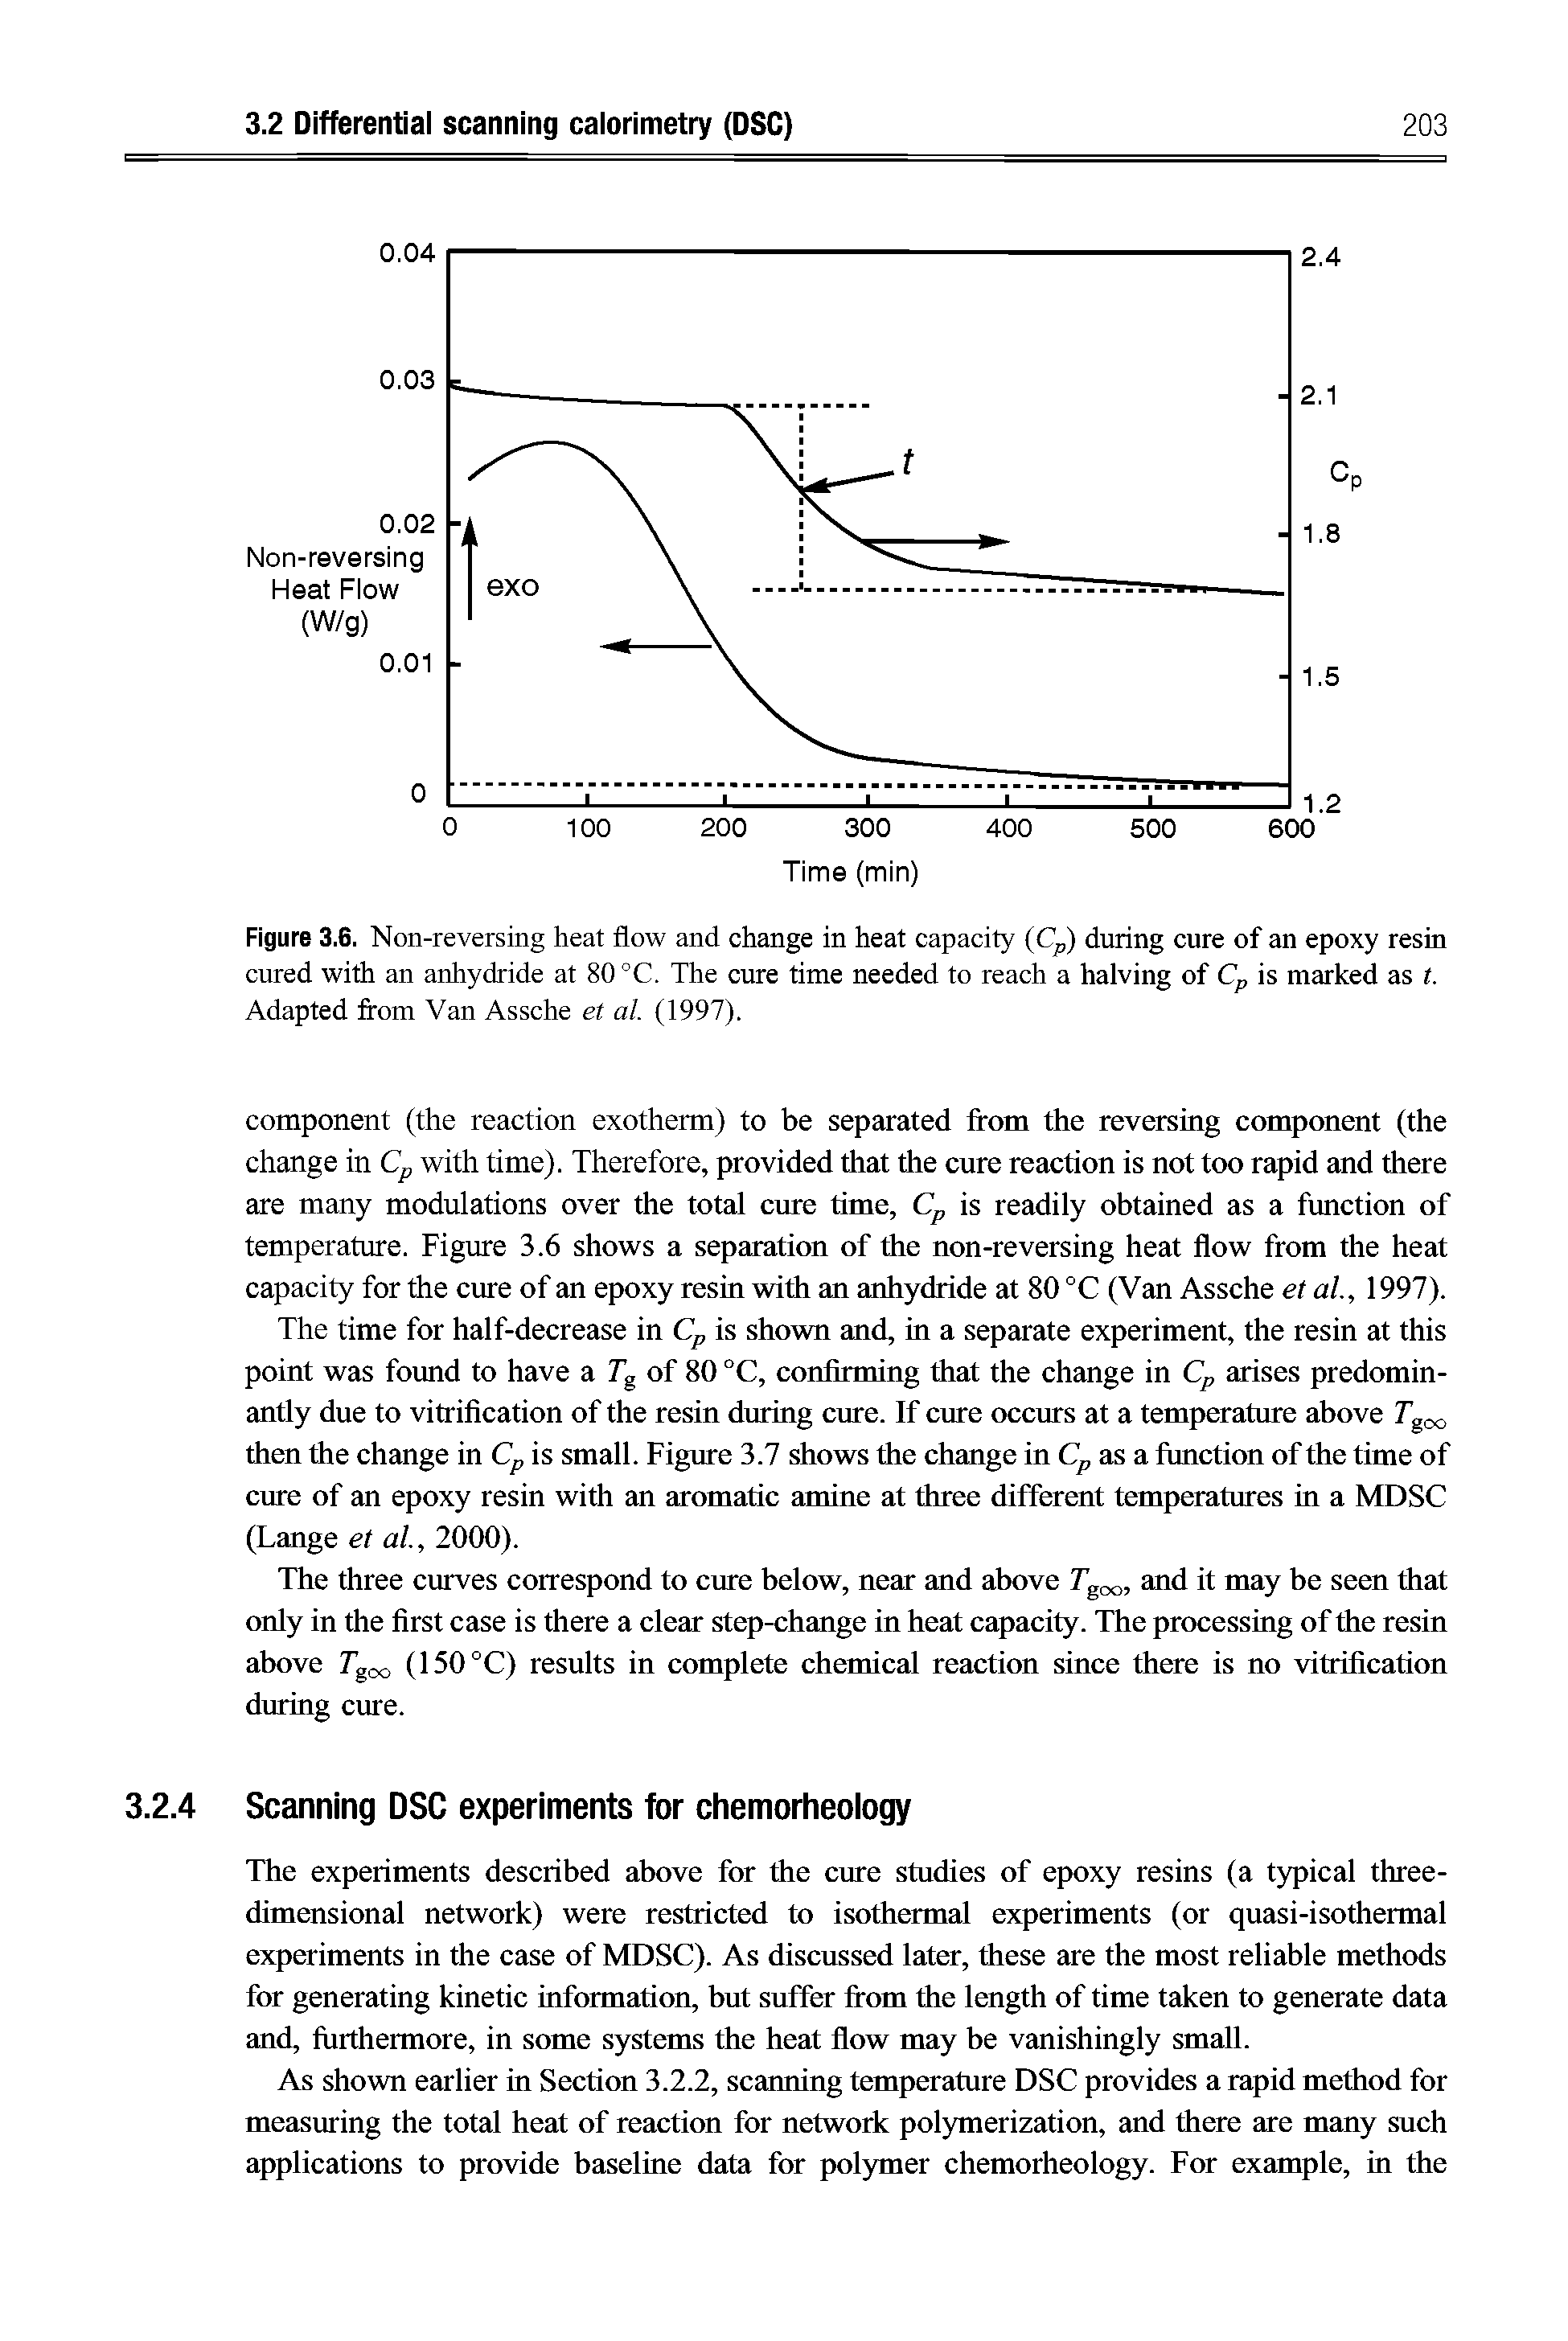 Figure 3.6. Non-reversing heat flow and change in heat capacity (C ) during cure of an epoxy resin cured with an anhydride at 80 °C. The cure time needed to reach a halving of Cp is marked as t. Adapted from Van Assche et al. (1997).